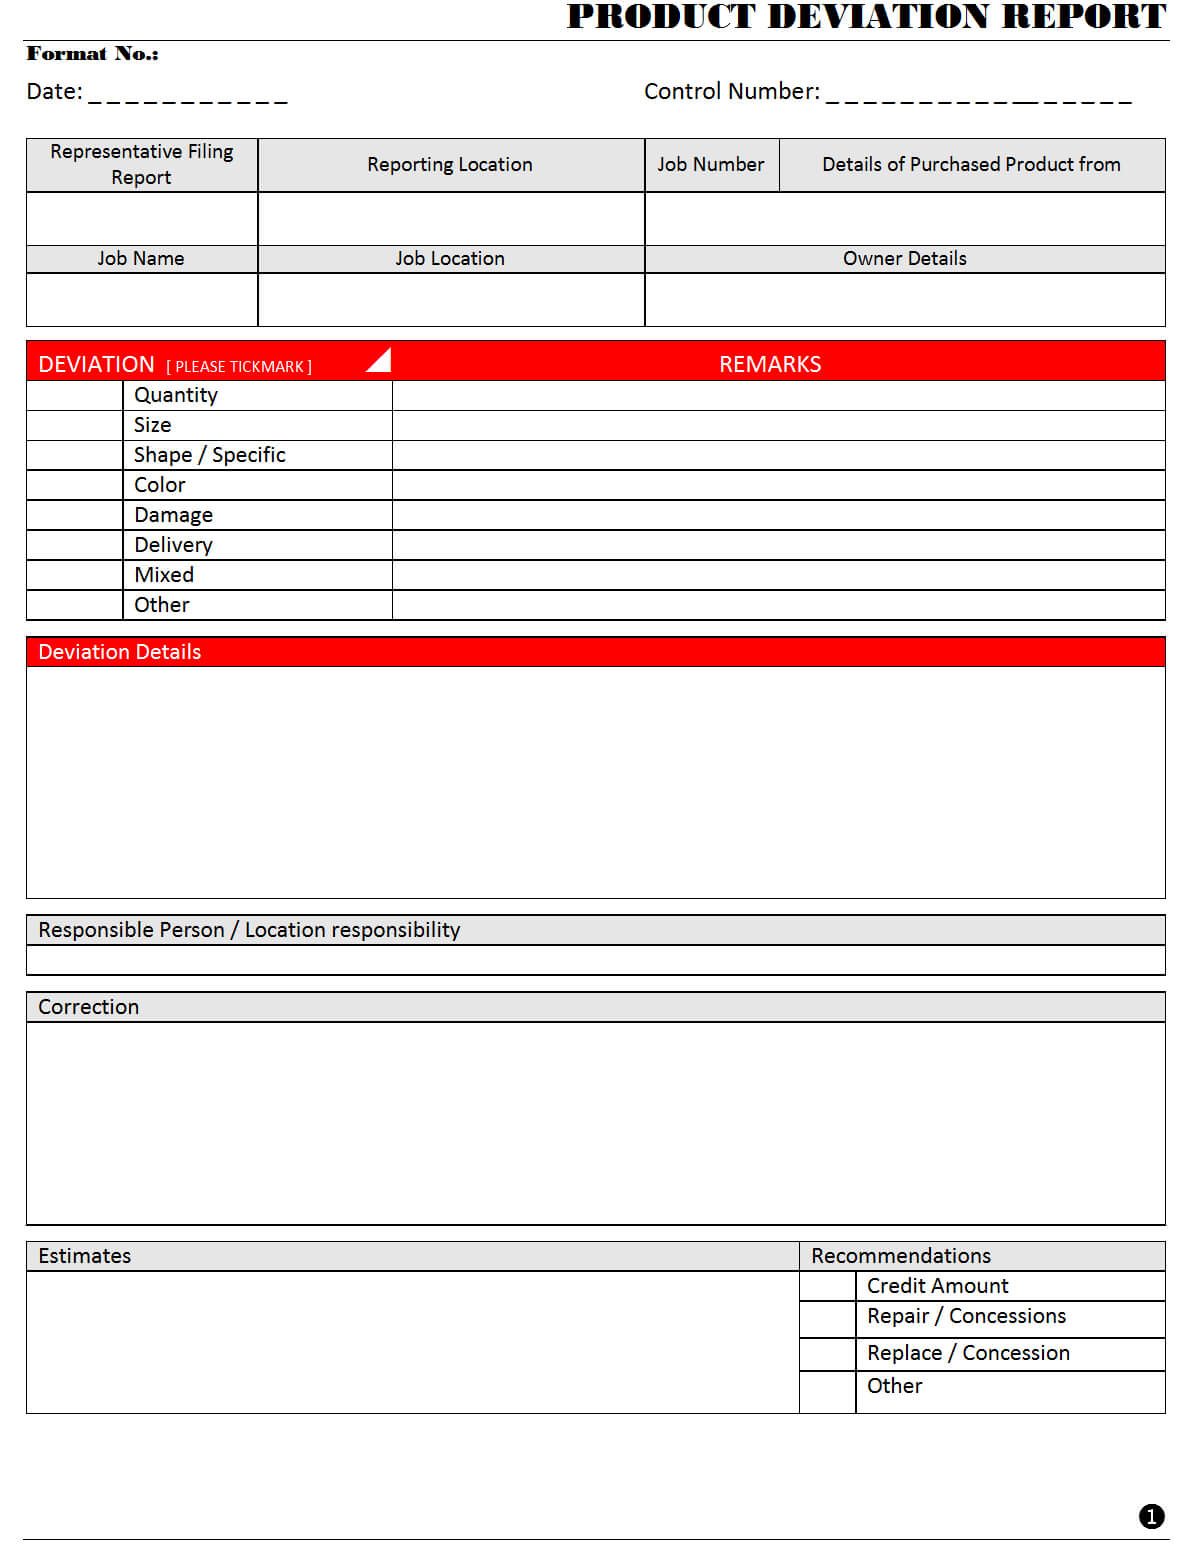 Product Deviation Report - Intended For Deviation Report Template